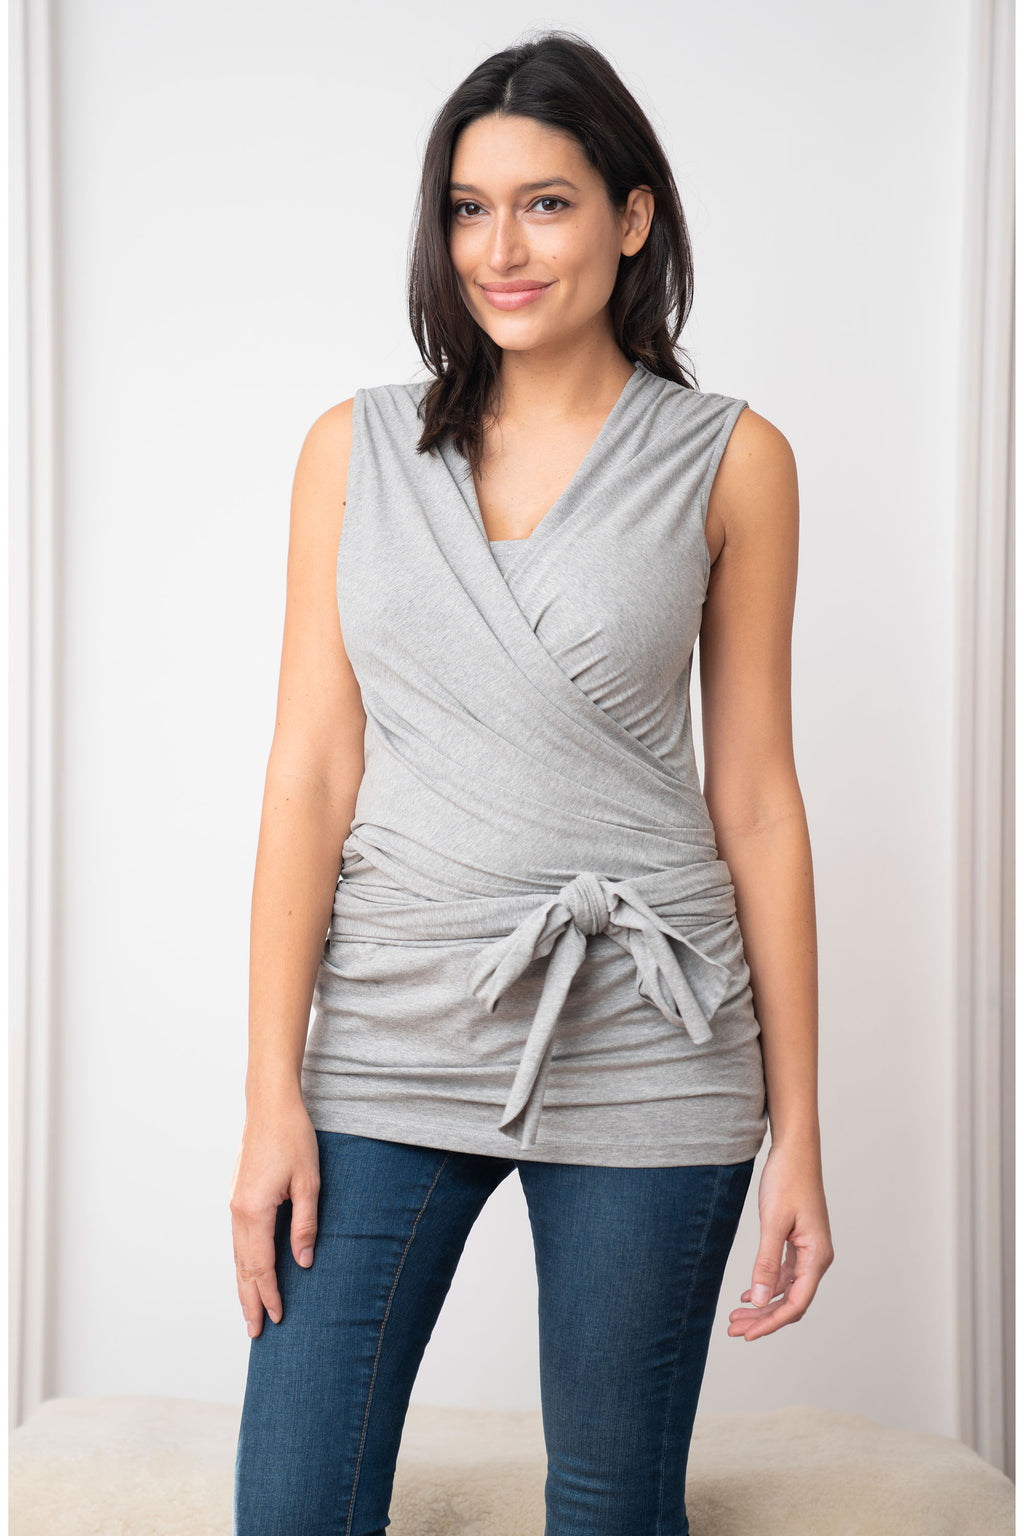 Winifrid Grey Marle Cotton Skin to Skin Top Seraphine